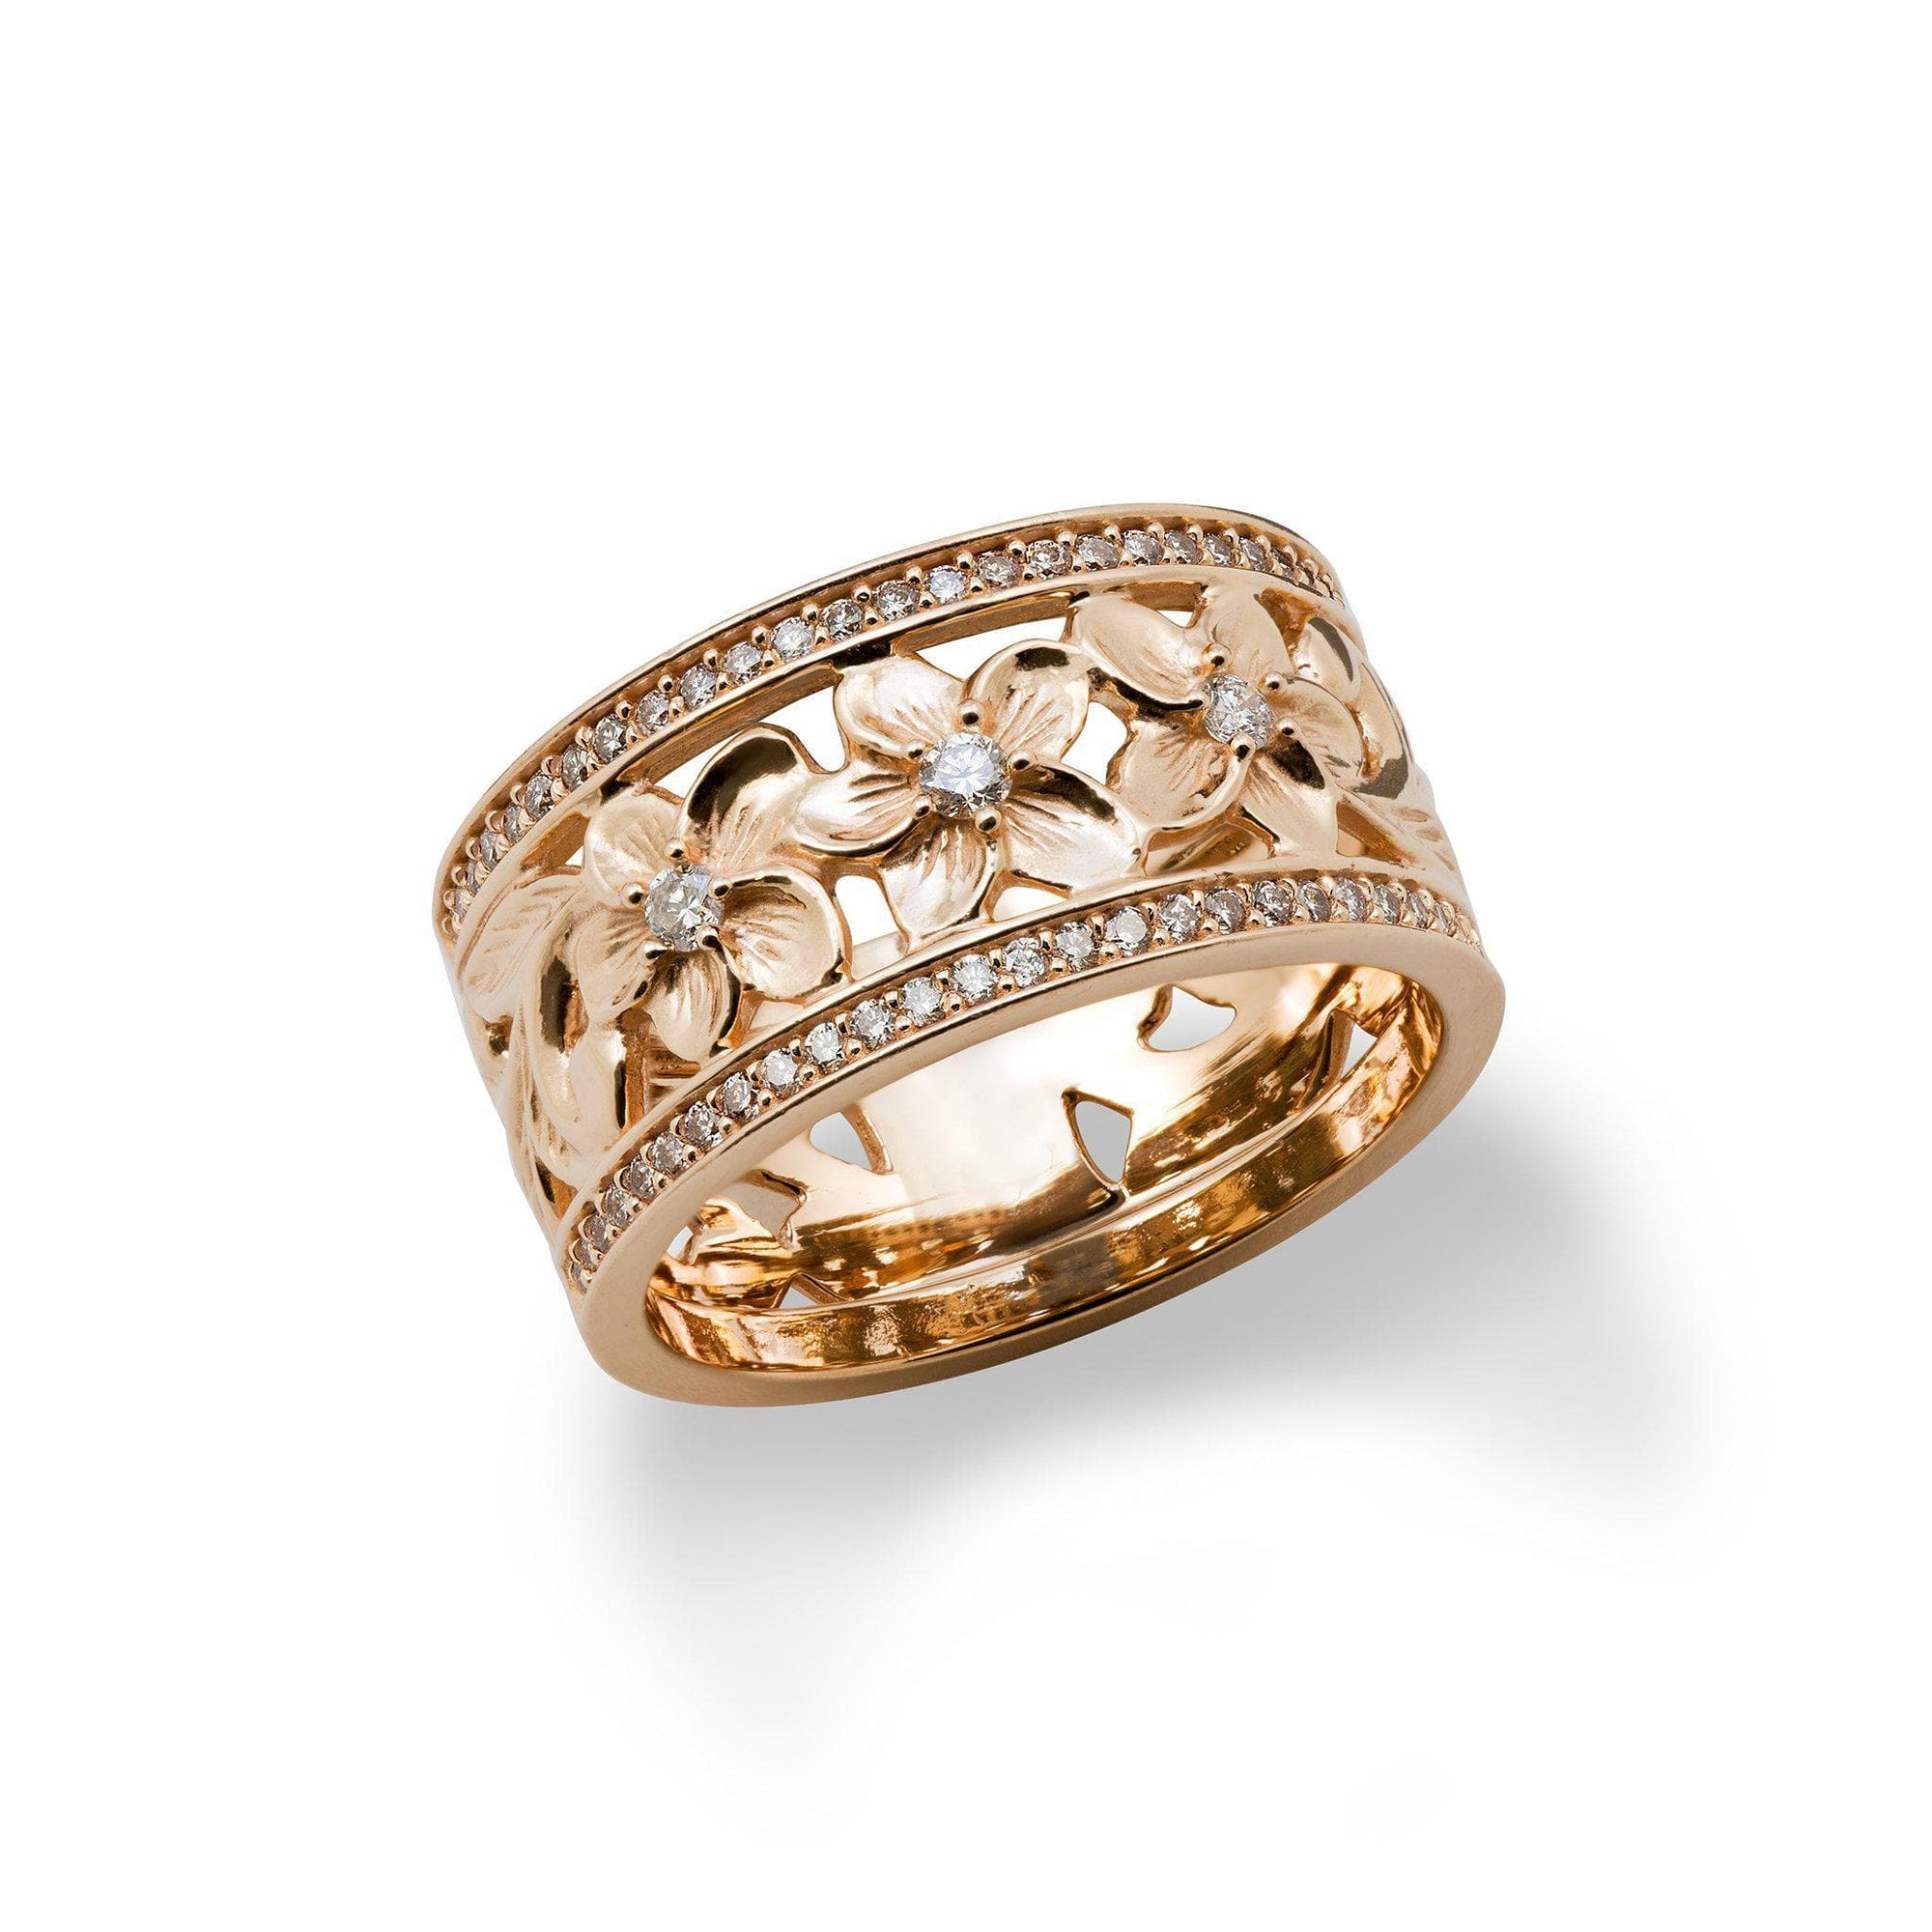 Hawaiian Heirloom Ring in Rose Gold with Diamonds - 10mm-[SKU]